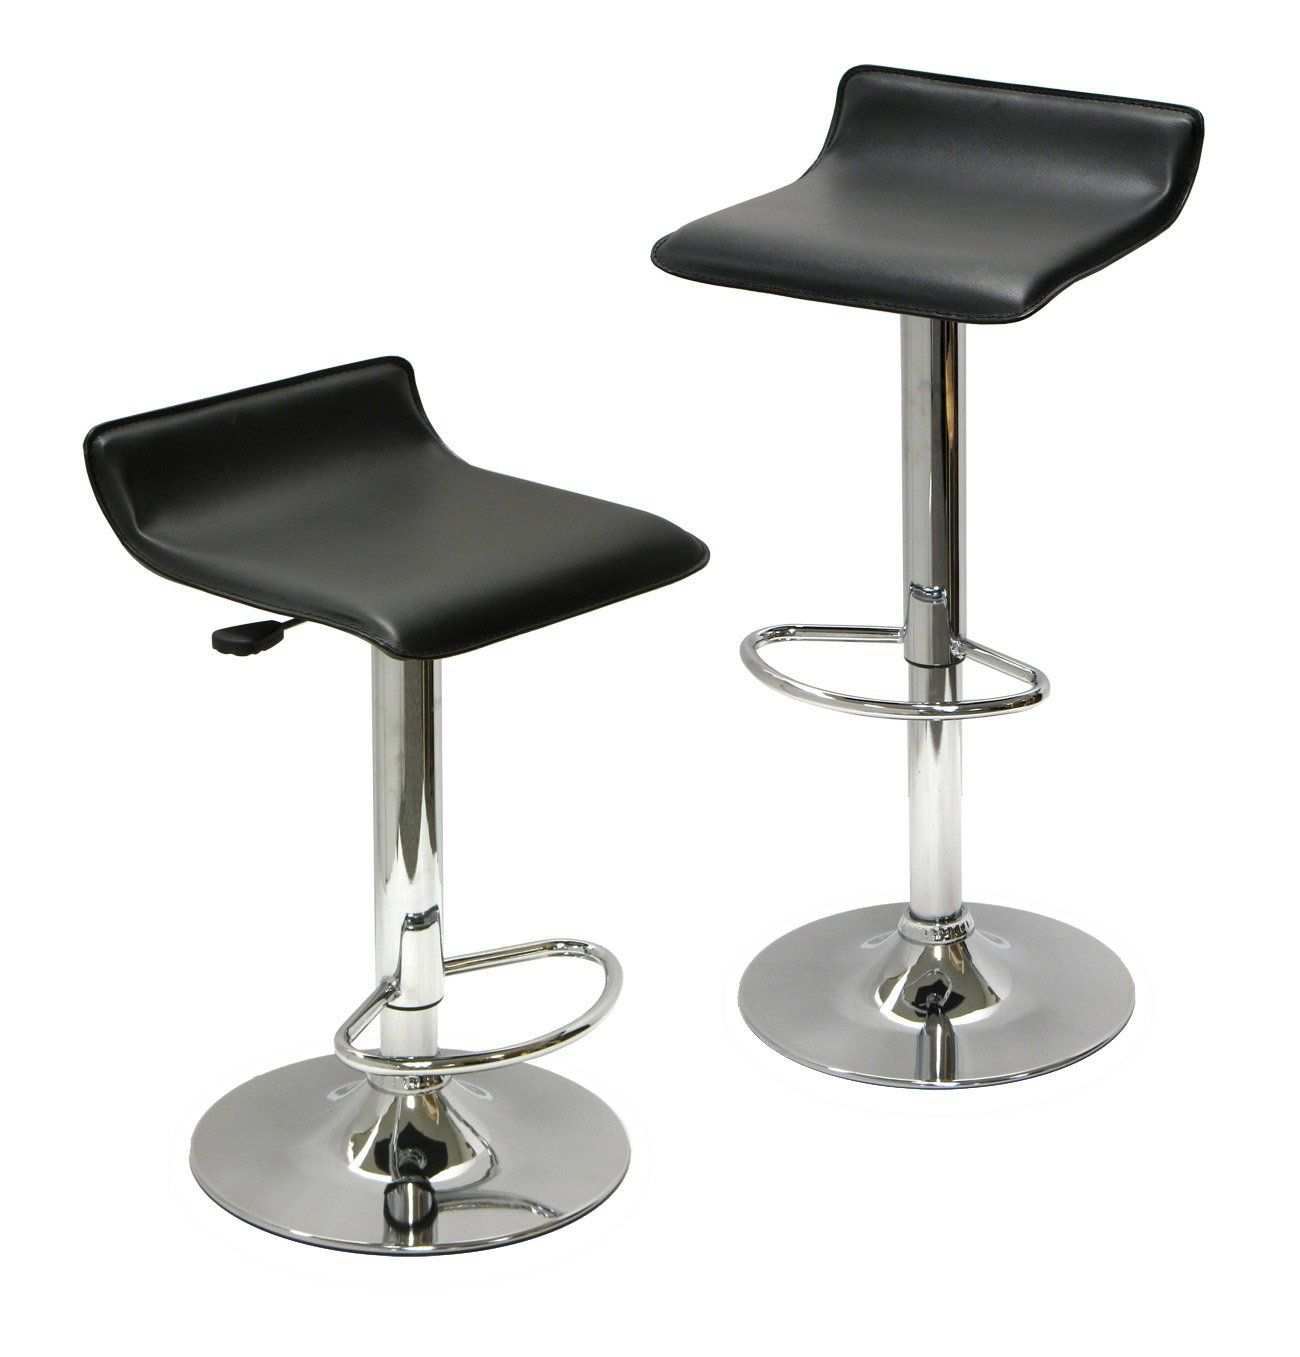 Winsome Adjule Airlift Bar Stool Set Of 2 93329 Stools Kitchen And Dining Furniture